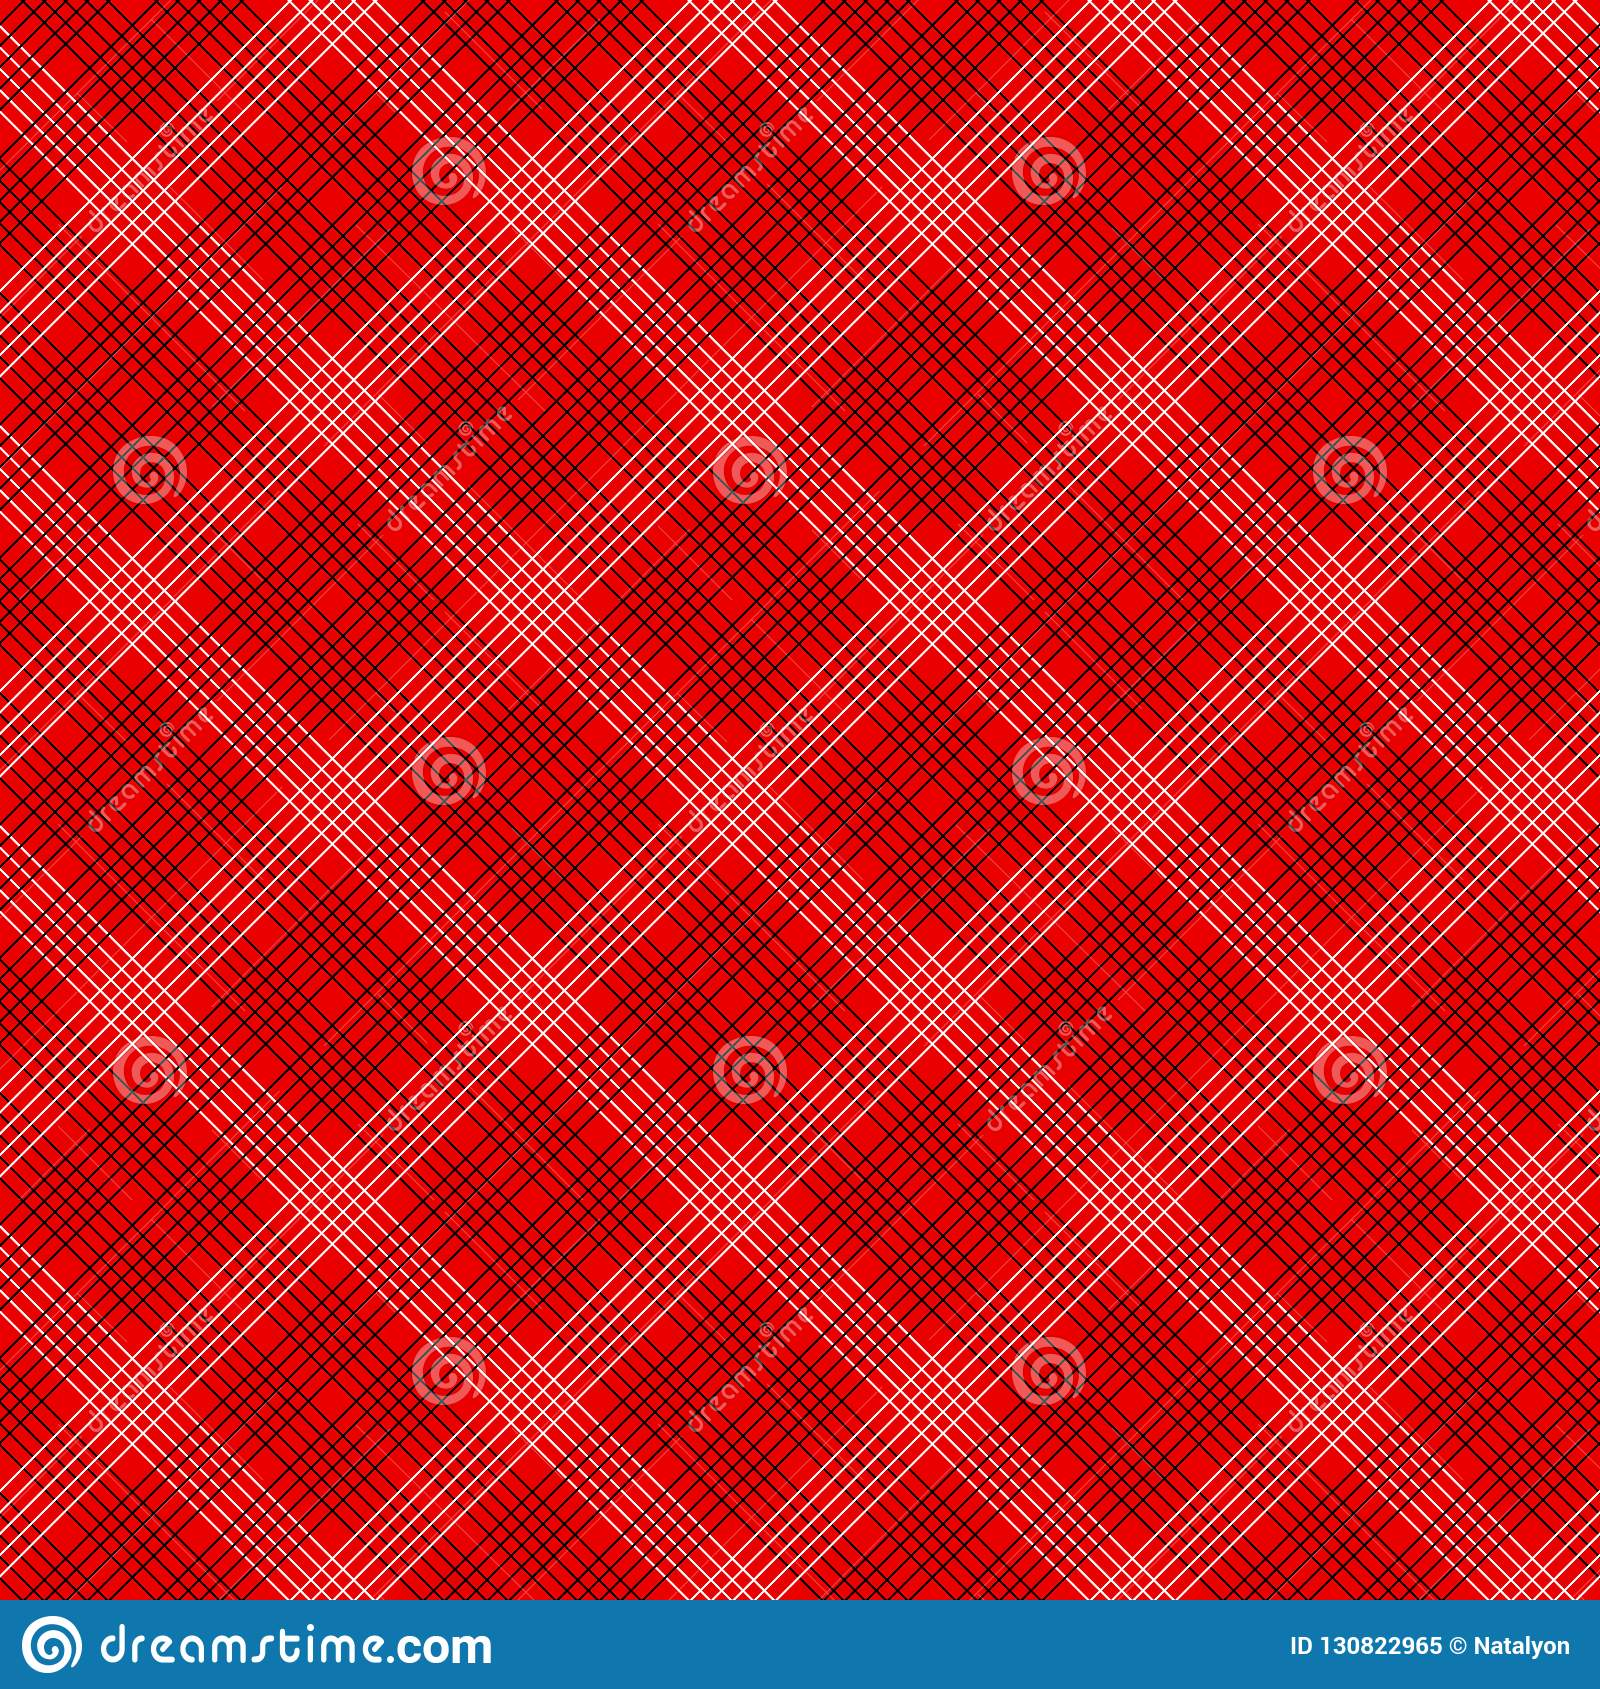 Black and red simple tartan traditional fabric seamless pattern, vector